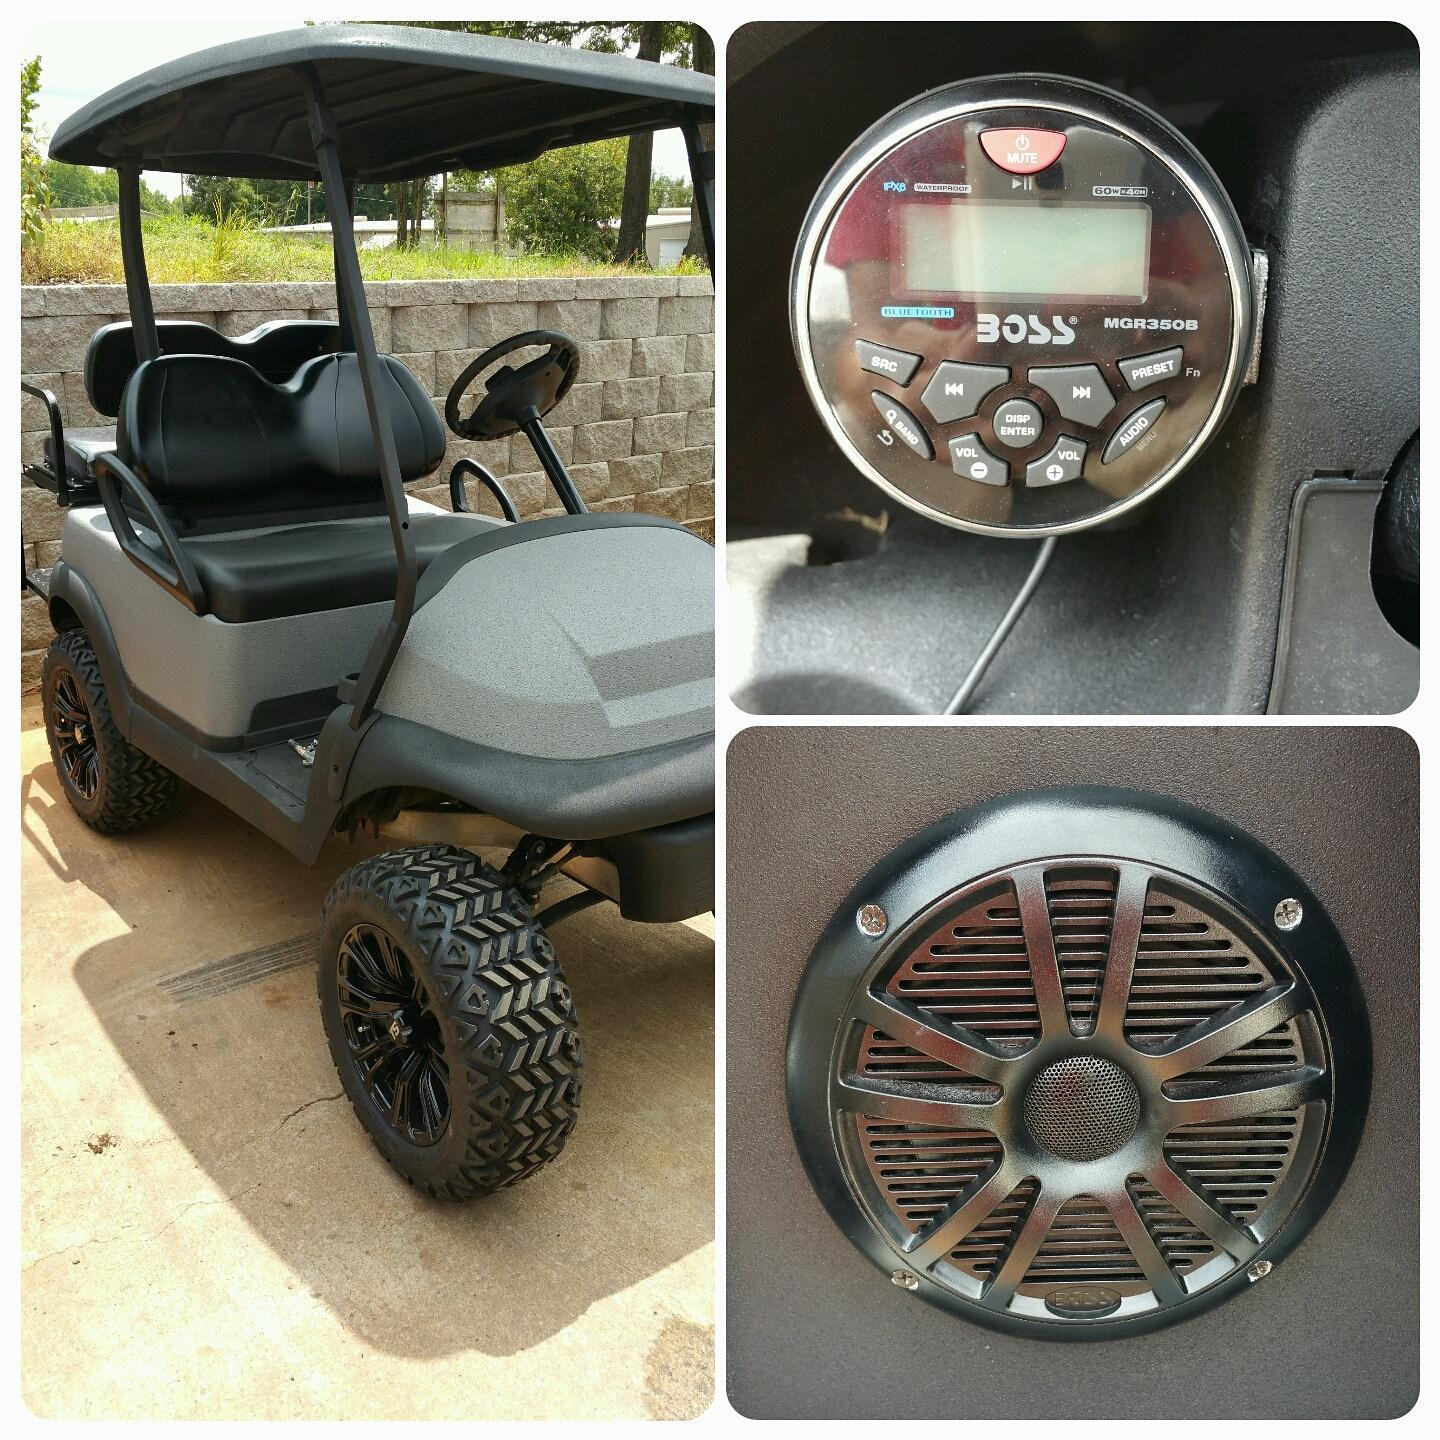 BOSS marine radio with USB and Bluetooth , two BOSS marine speakers, and red LED lights on this golf cart